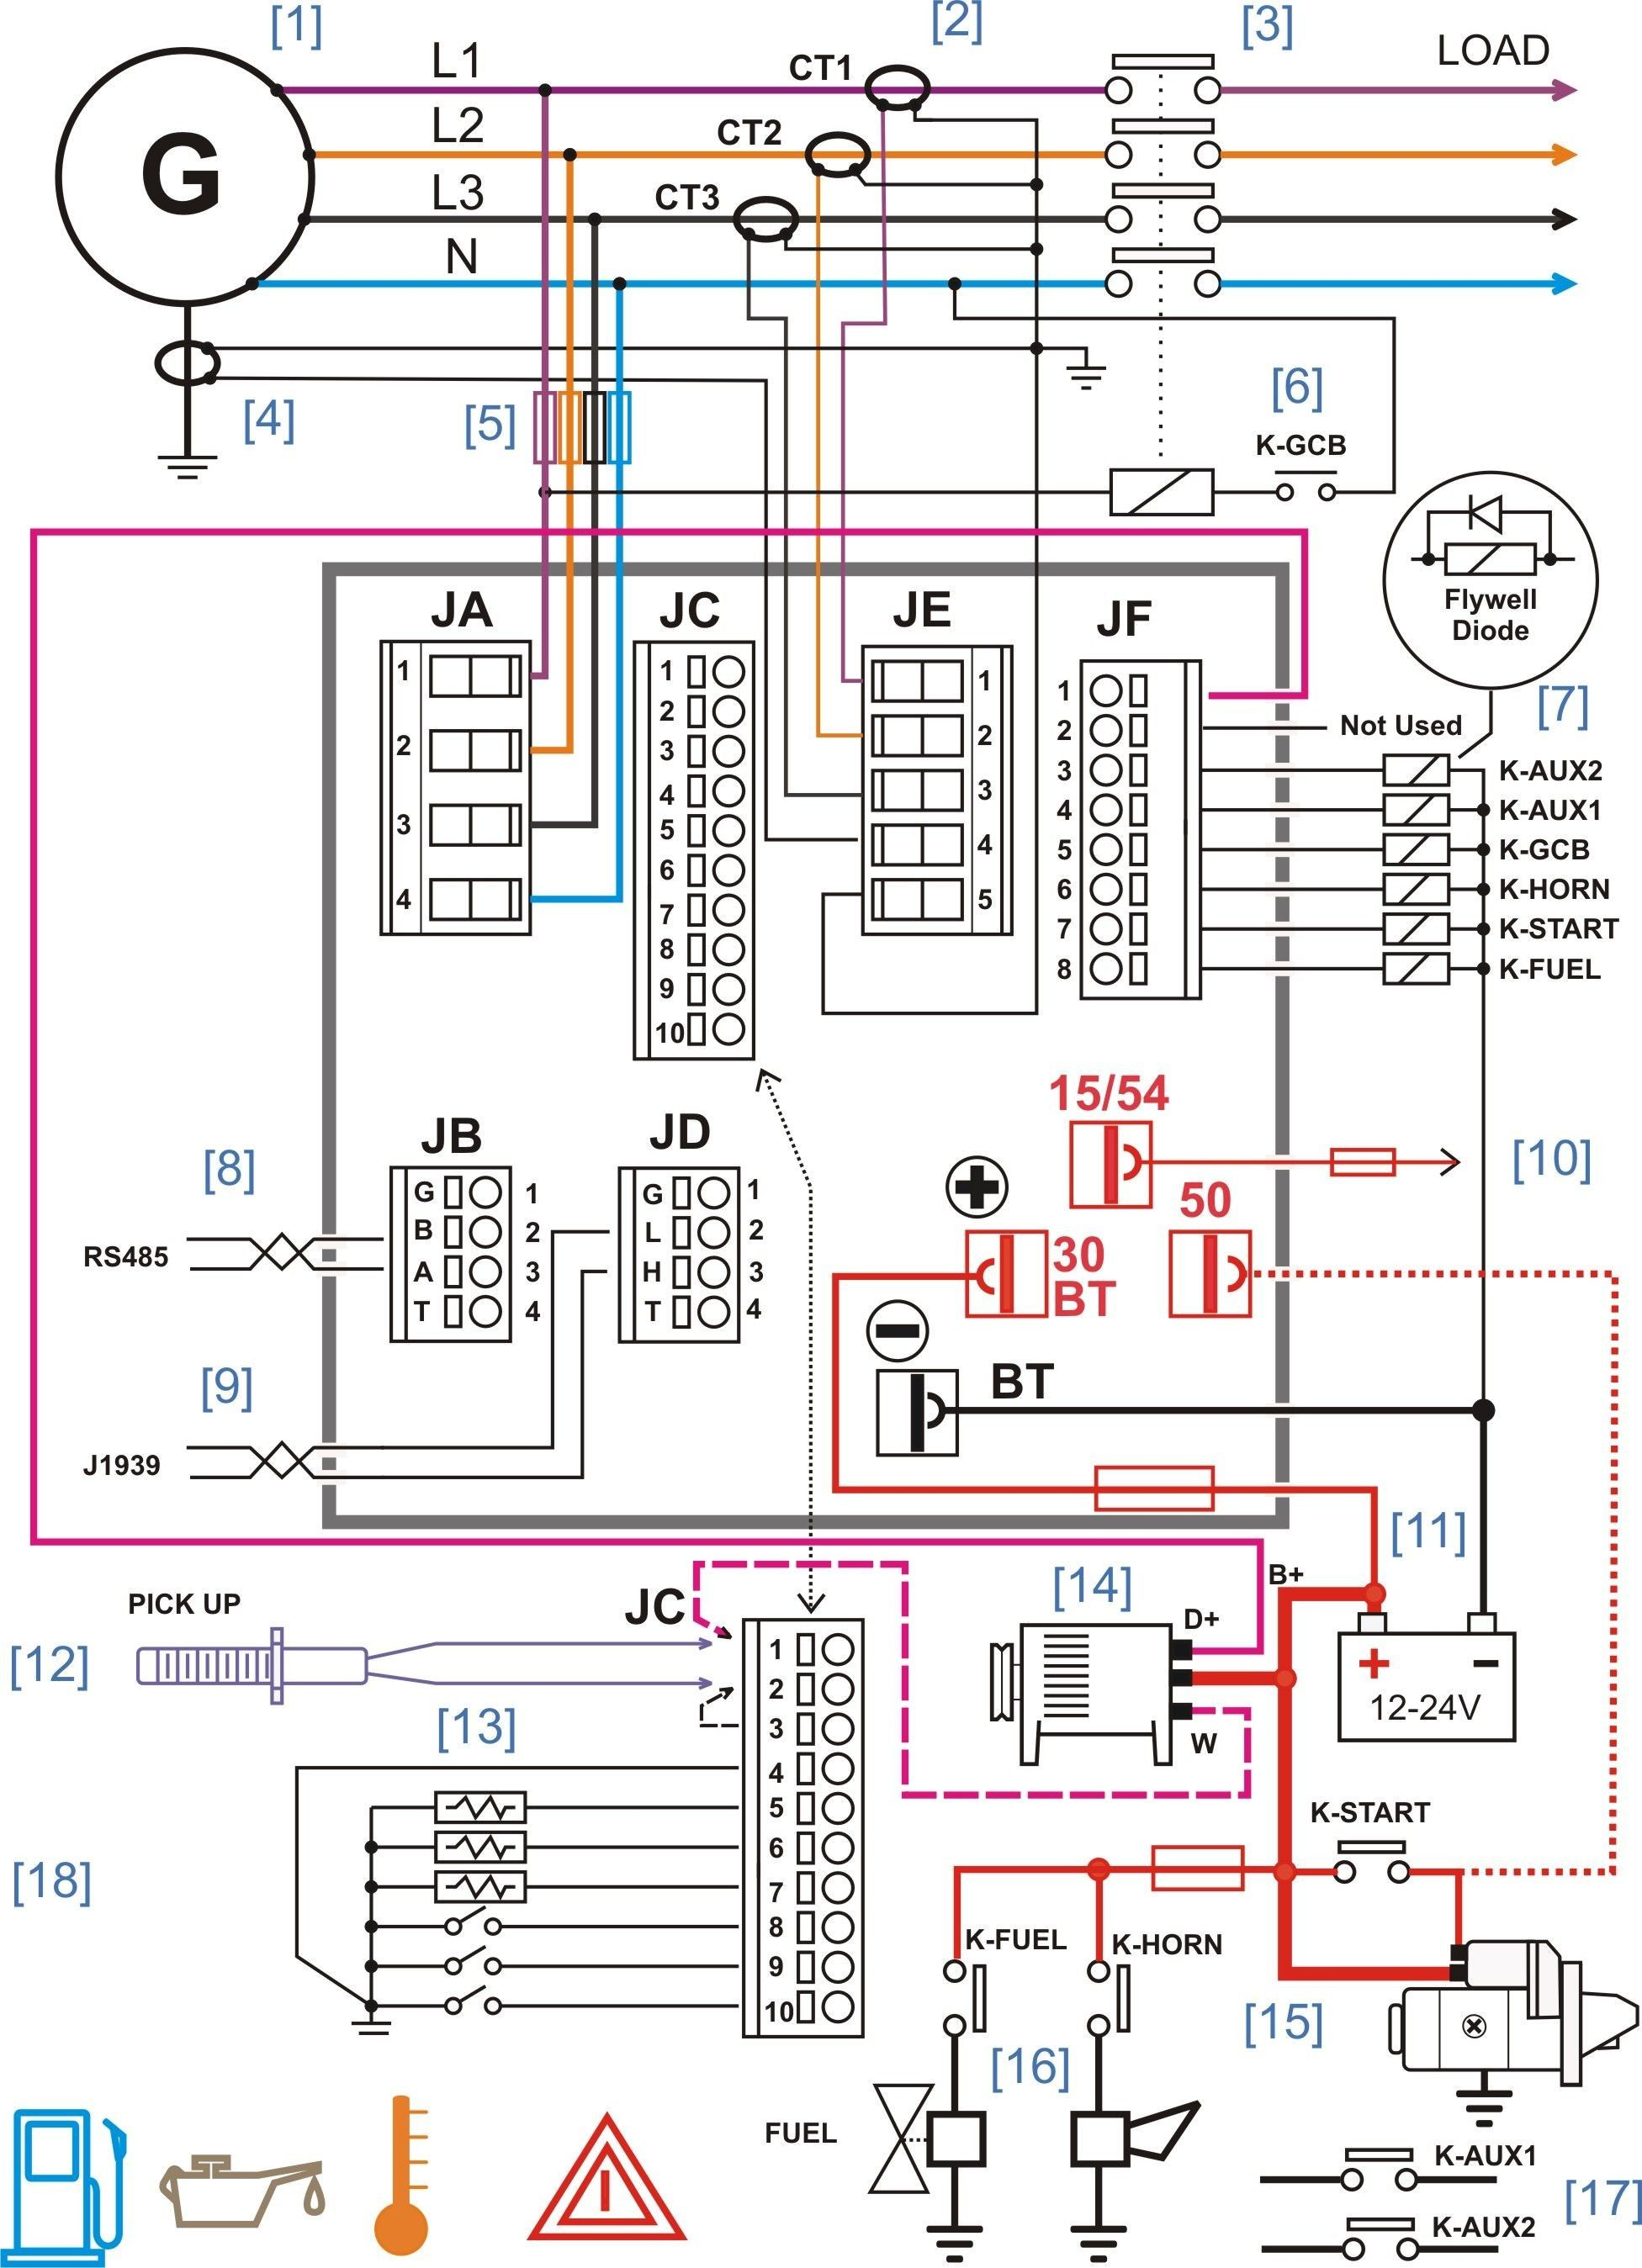 [SCHEMATICS_48IU]  Wiring Diagram for Auto Lift #diagram #diagramtemplate #diagramsample |  Electrical circuit diagram, Electrical wiring diagram, Electrical diagram | Challenger Lift Wiring Diagram |  | Pinterest